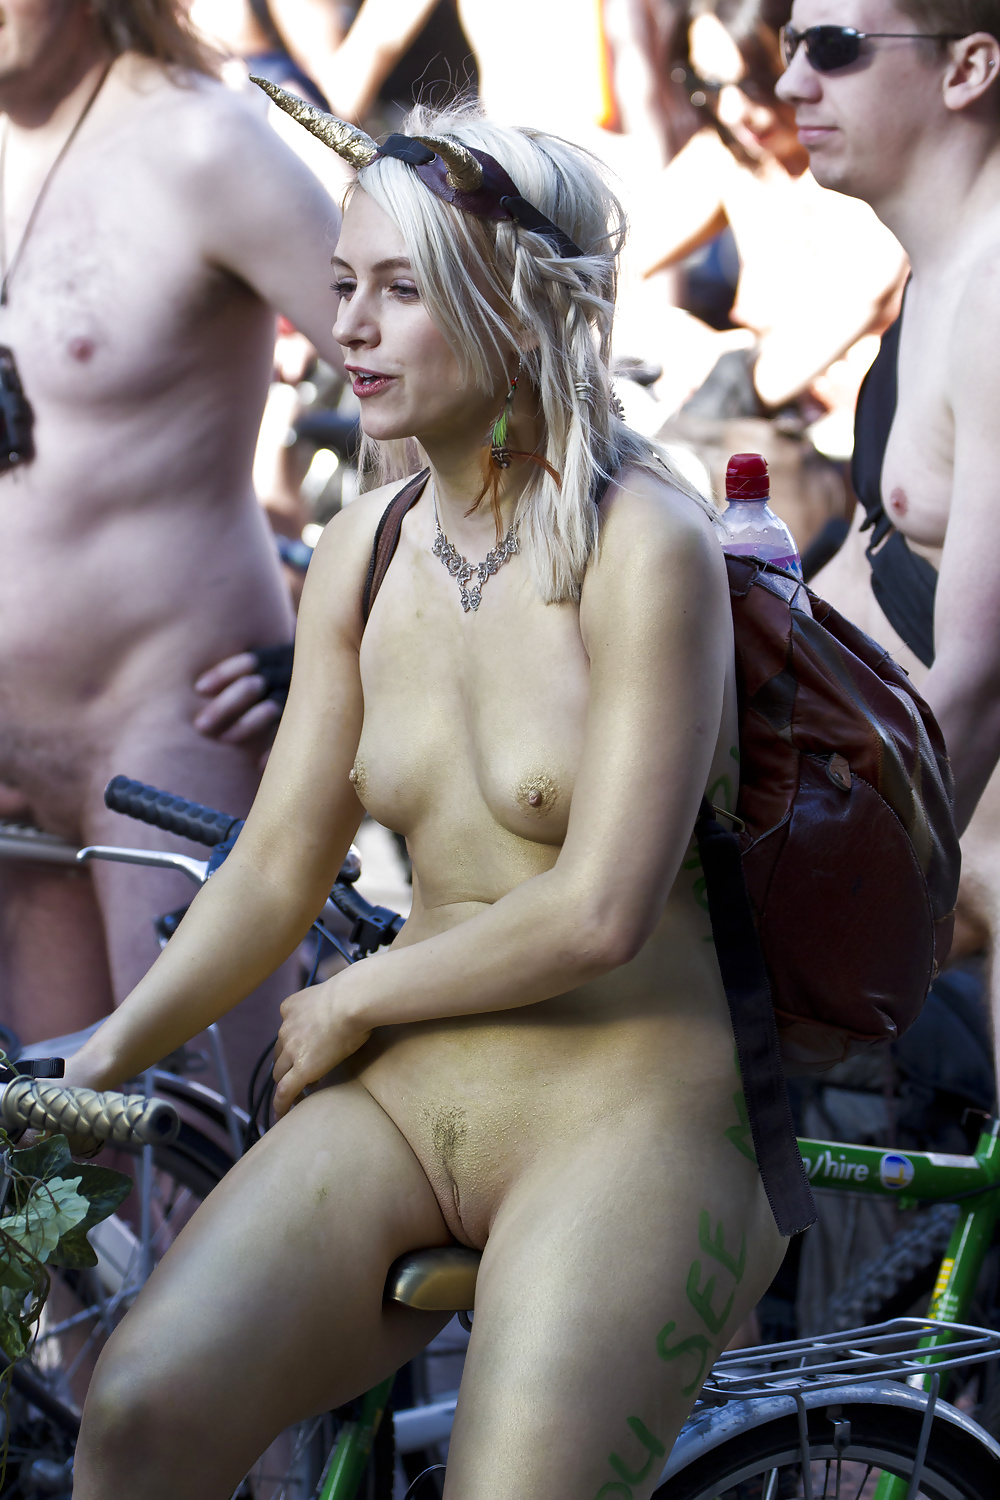 Girl from real world naked pics, please your women